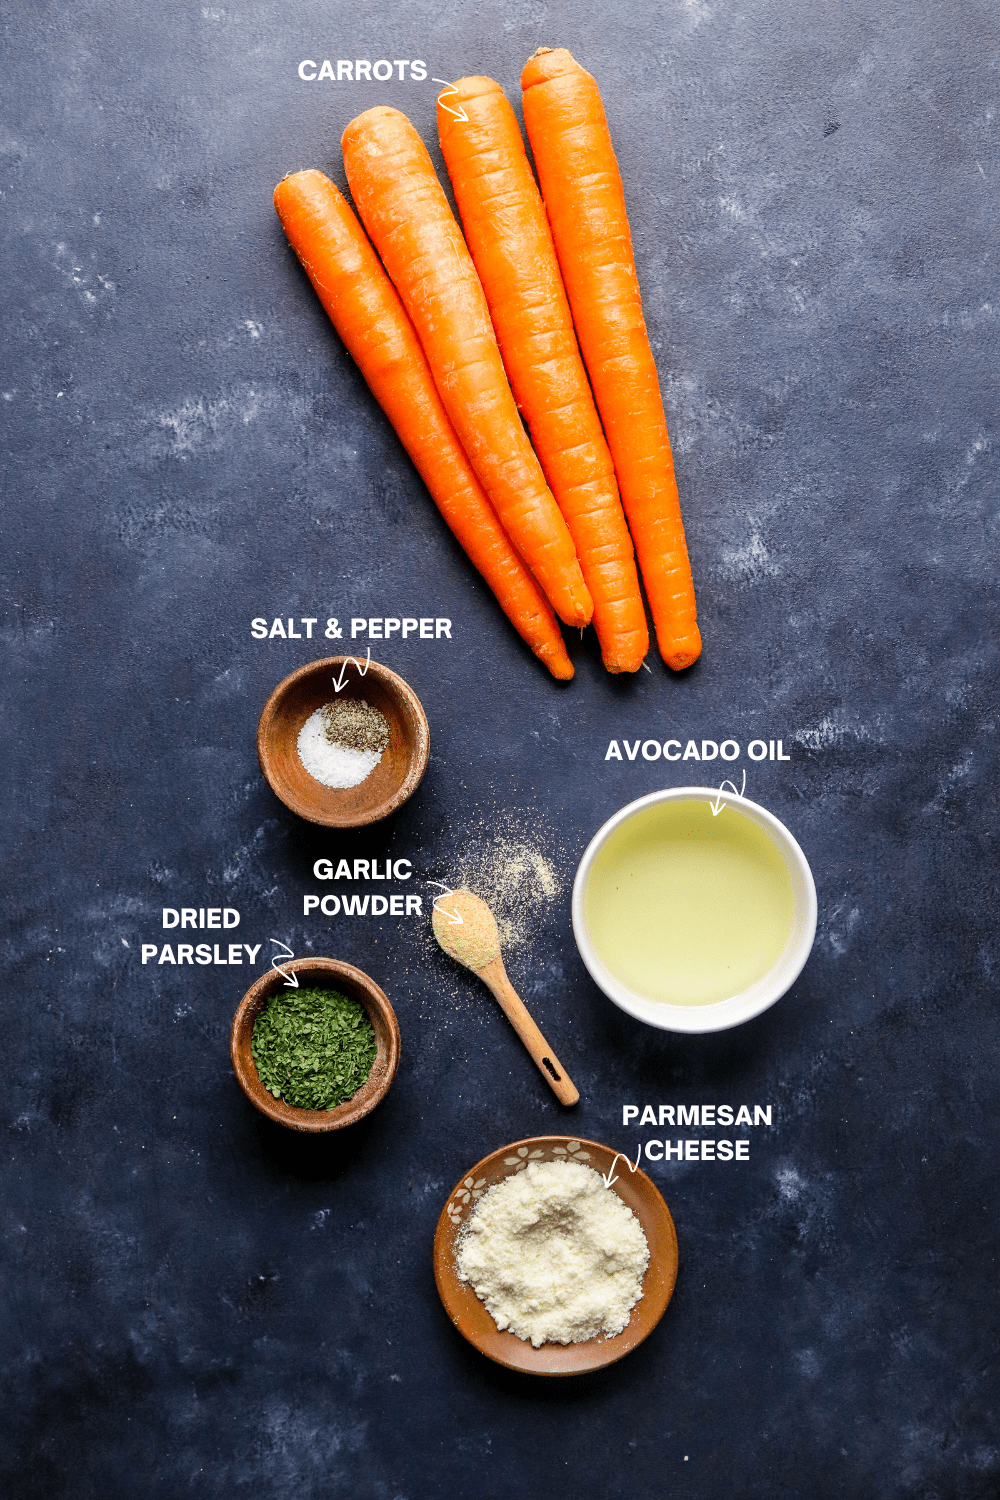 whole carrots, salt and pepper, avocado oil, parsley and cheese in small bowls on a blue surface with labels of each of the ingredients in white text.